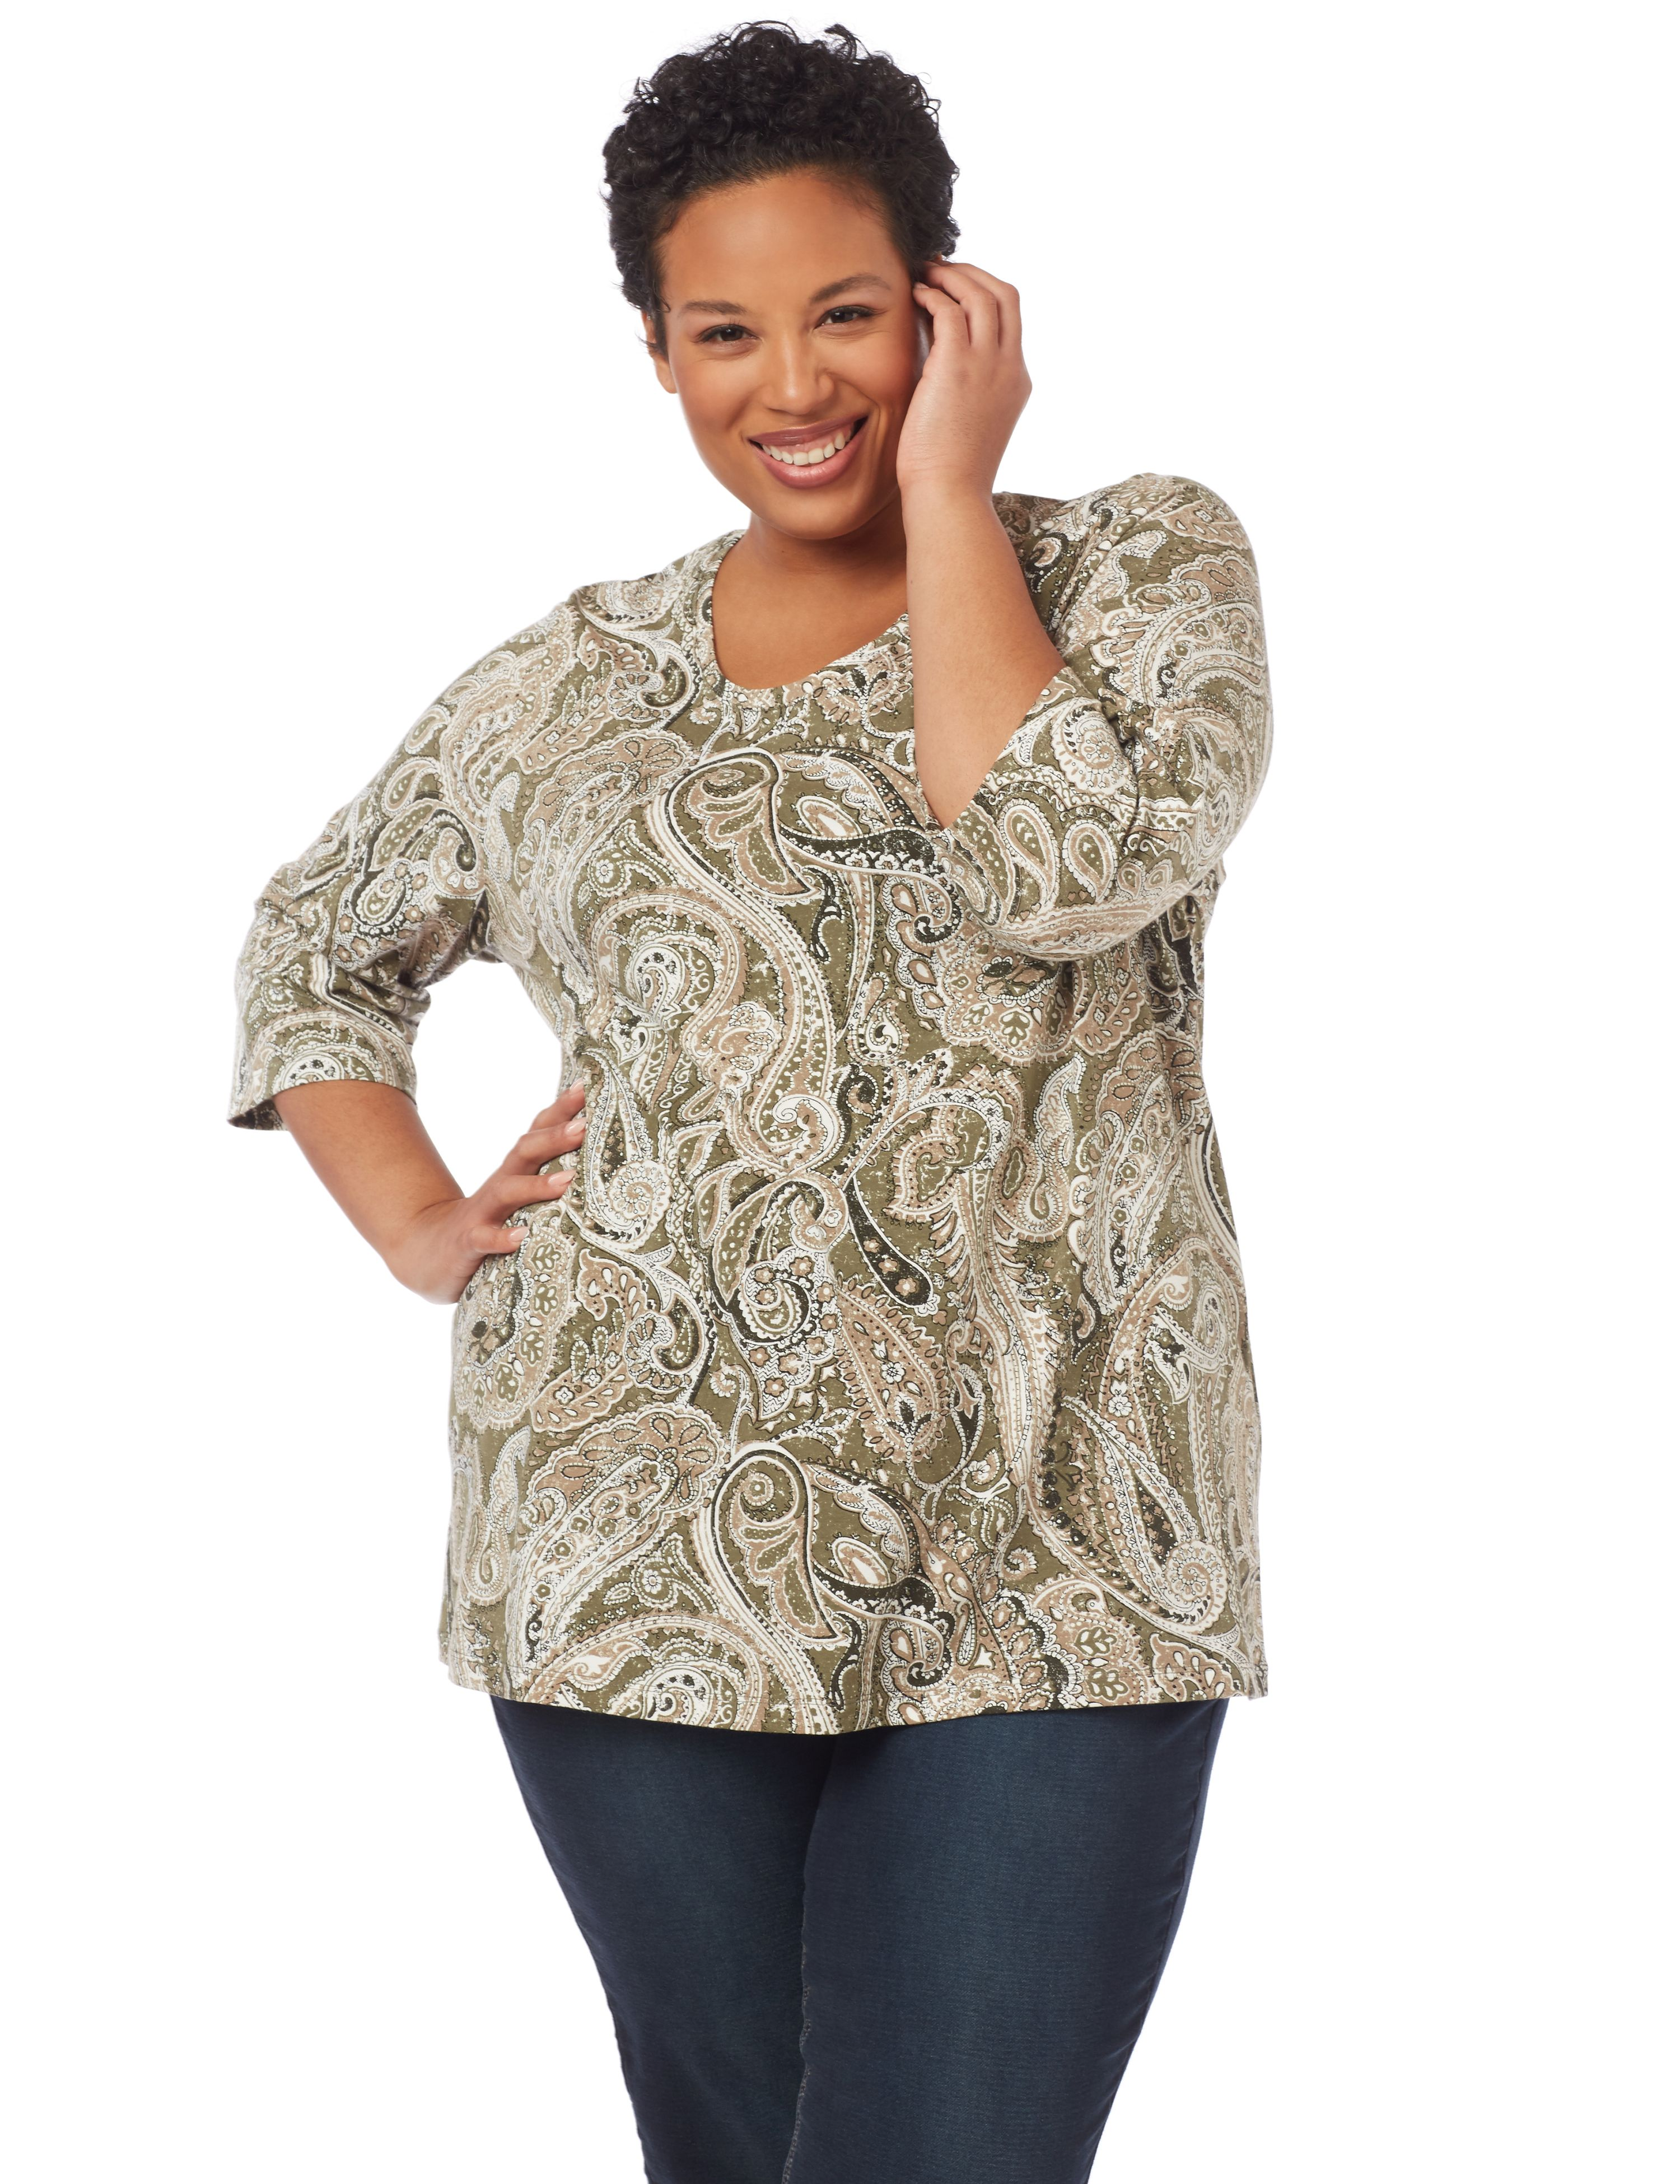 Paisley Dream 3/4-Sleeve Top 1091106 A/O PAISLEY PRINT MP-300094686